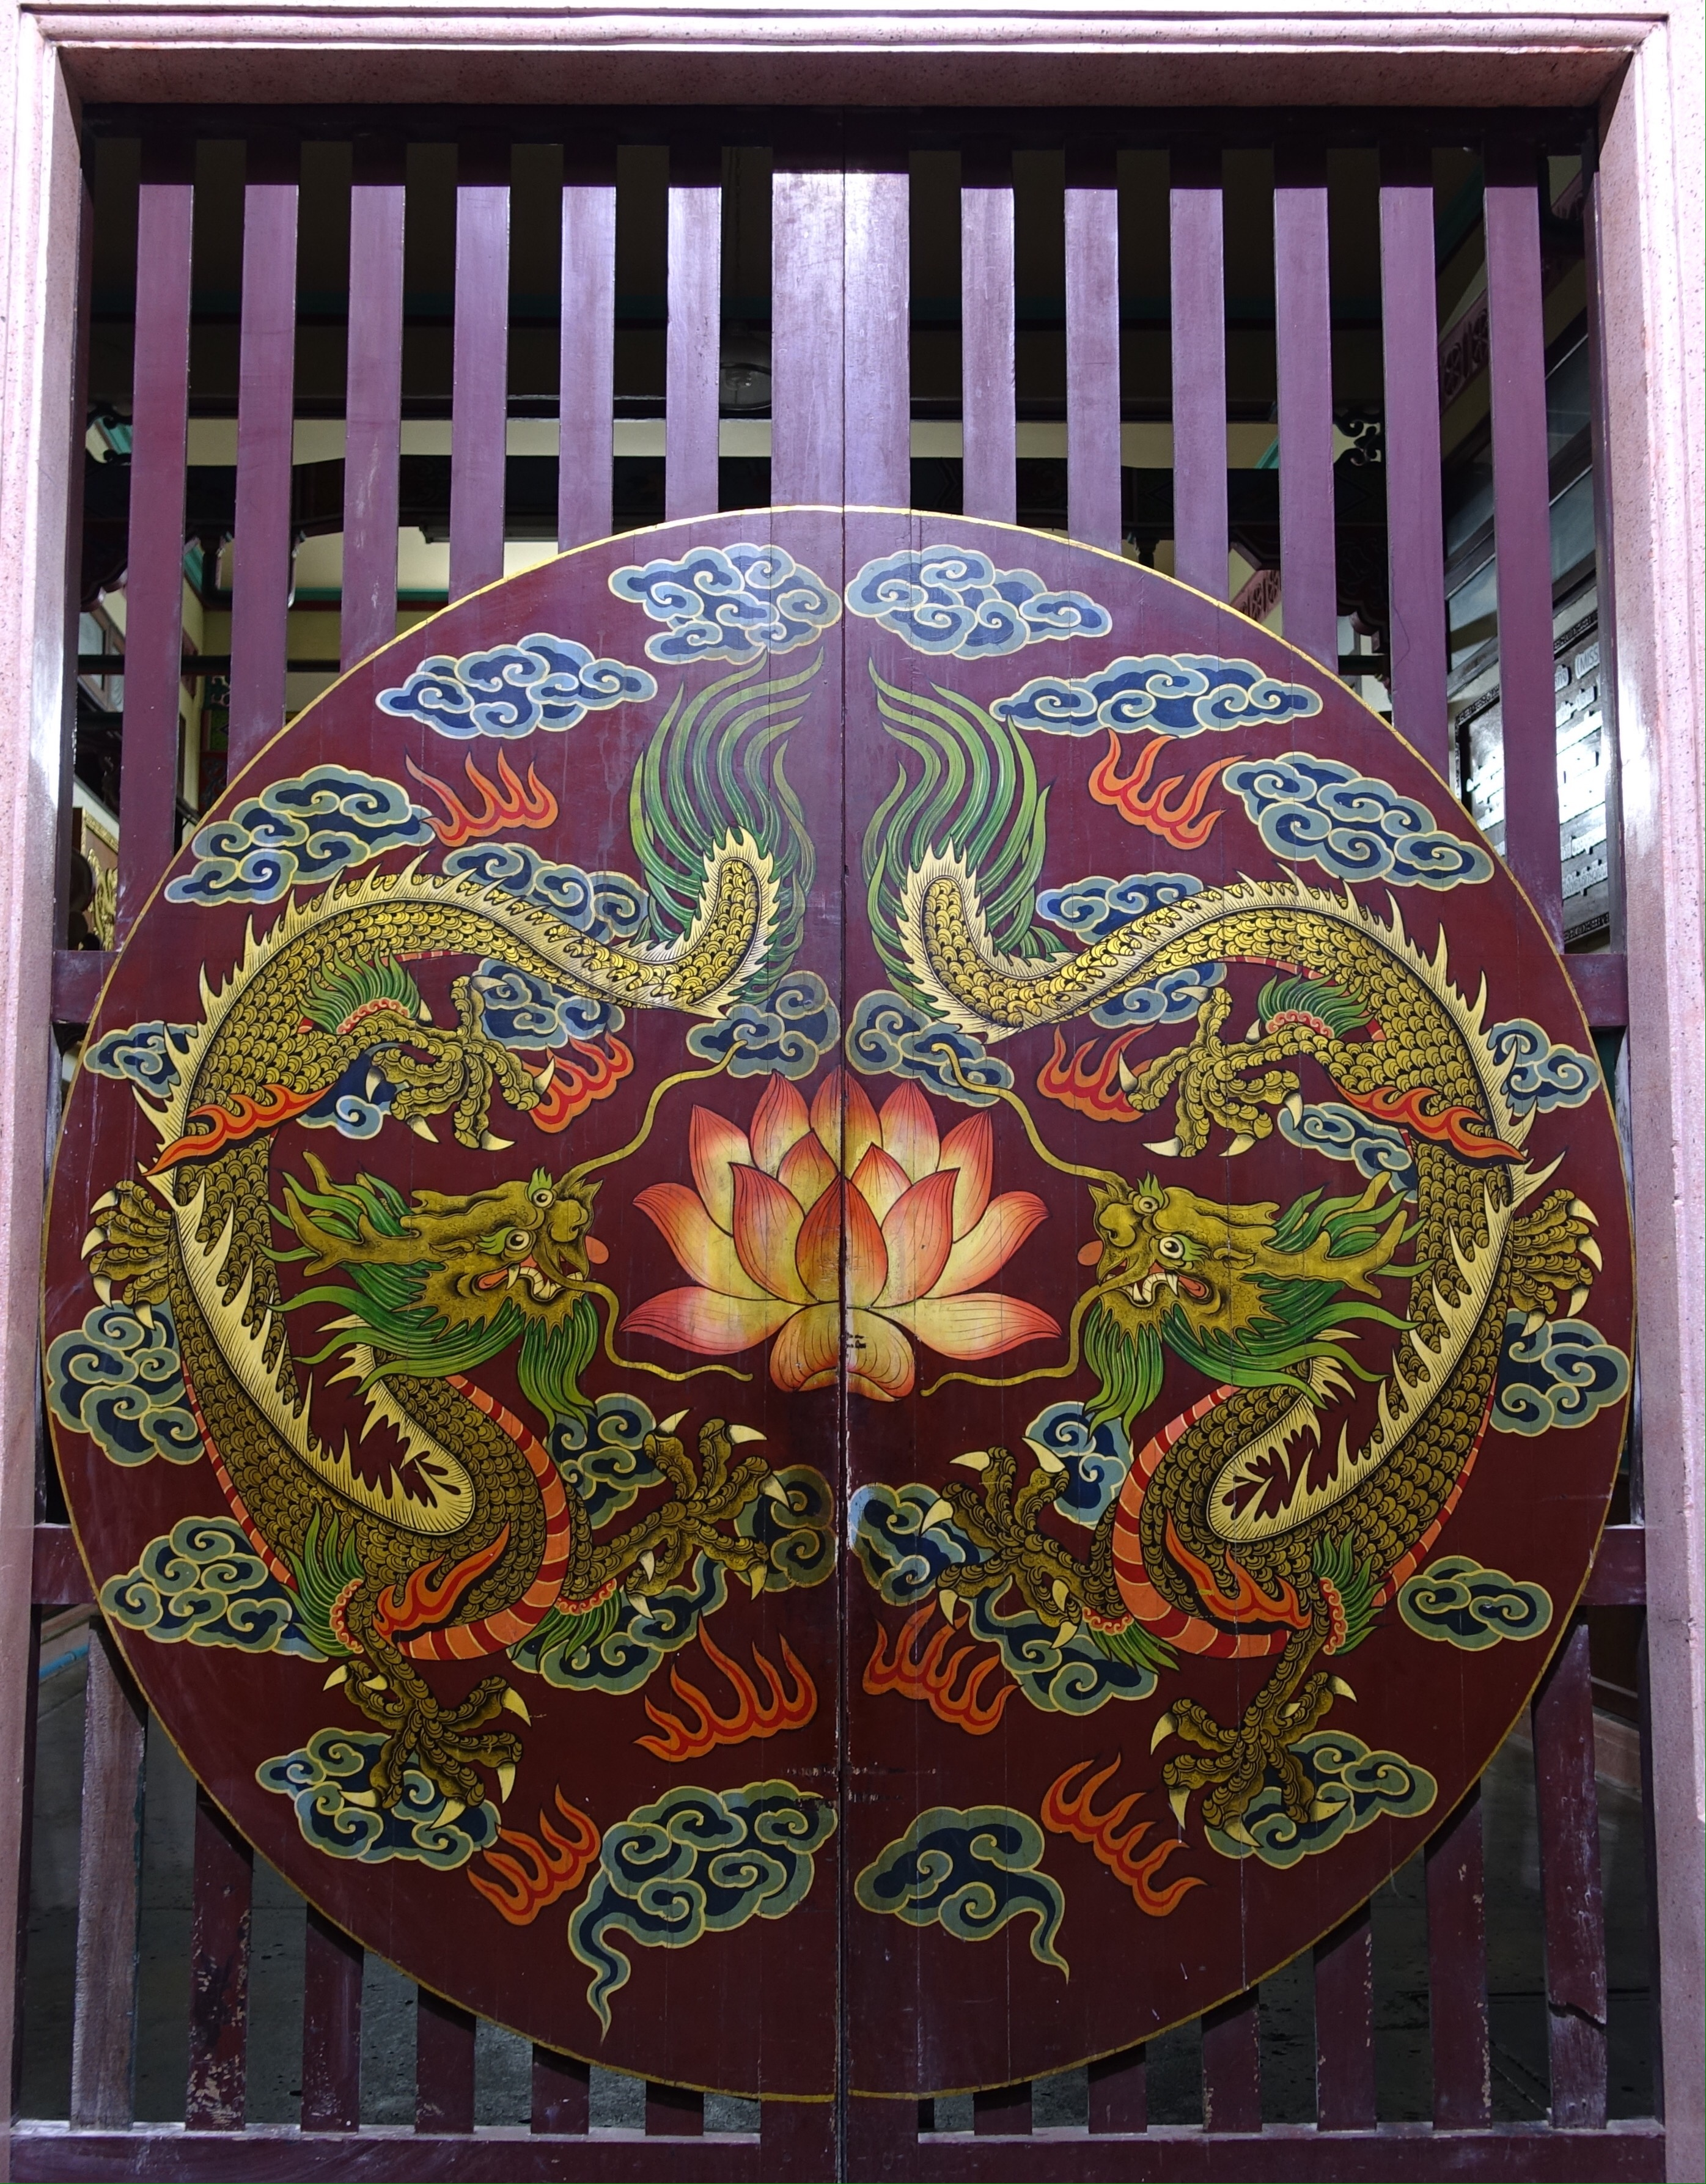 Painting on gate of temple